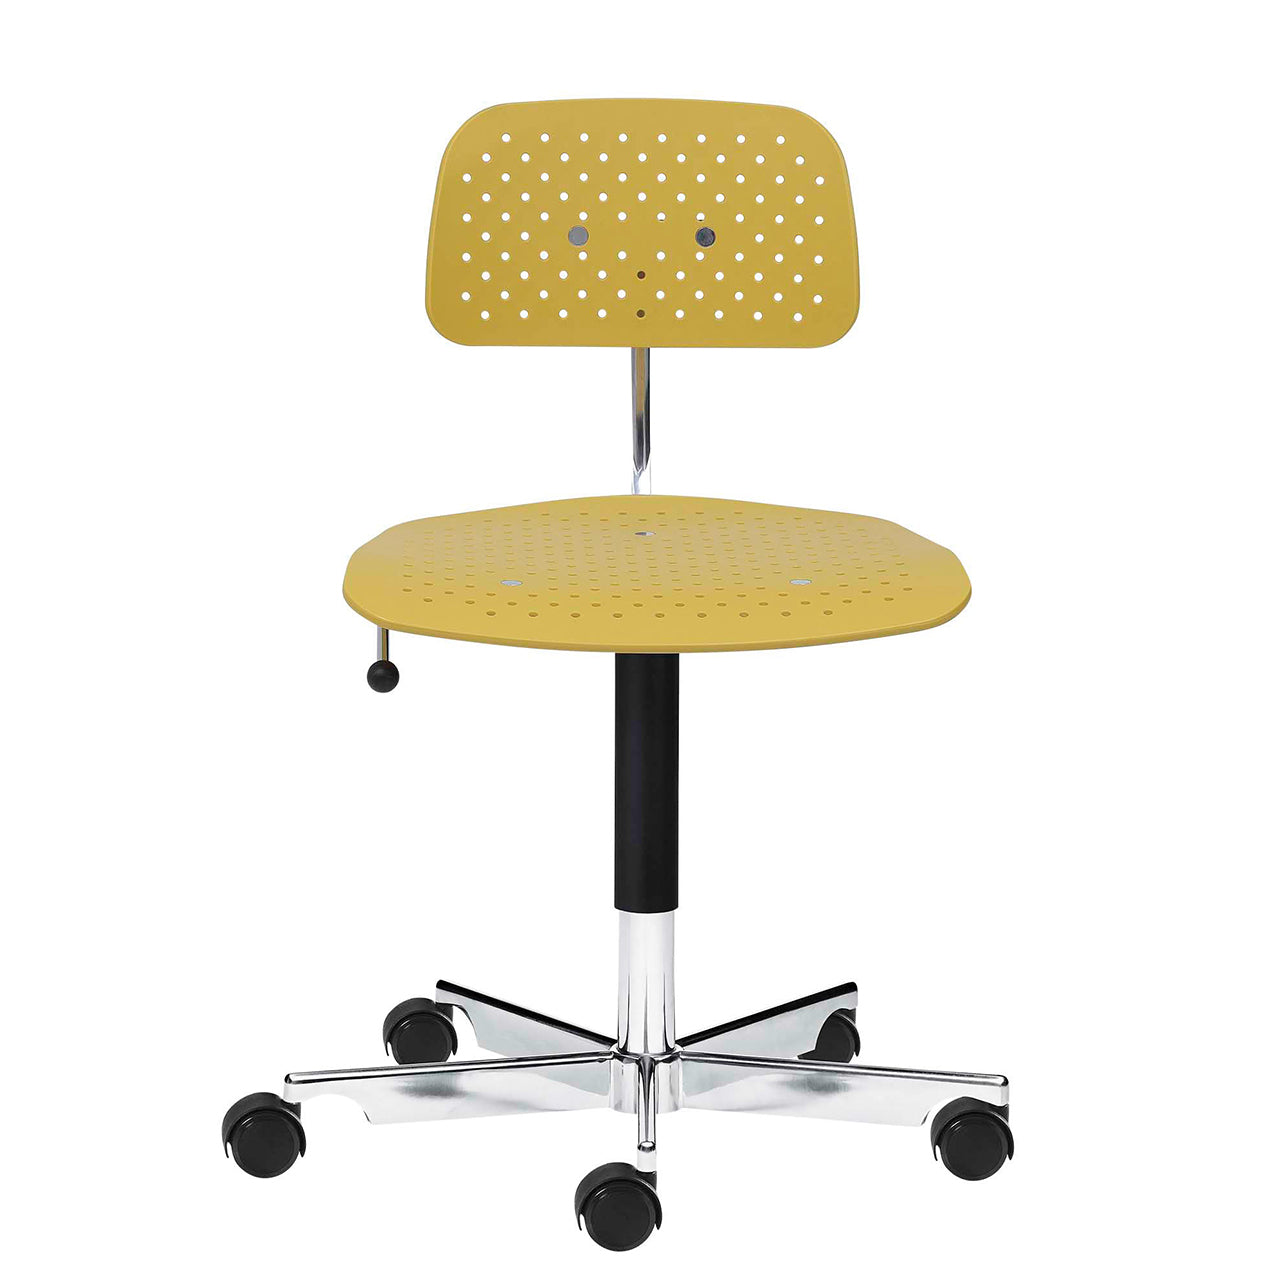 Kevi Air Chair